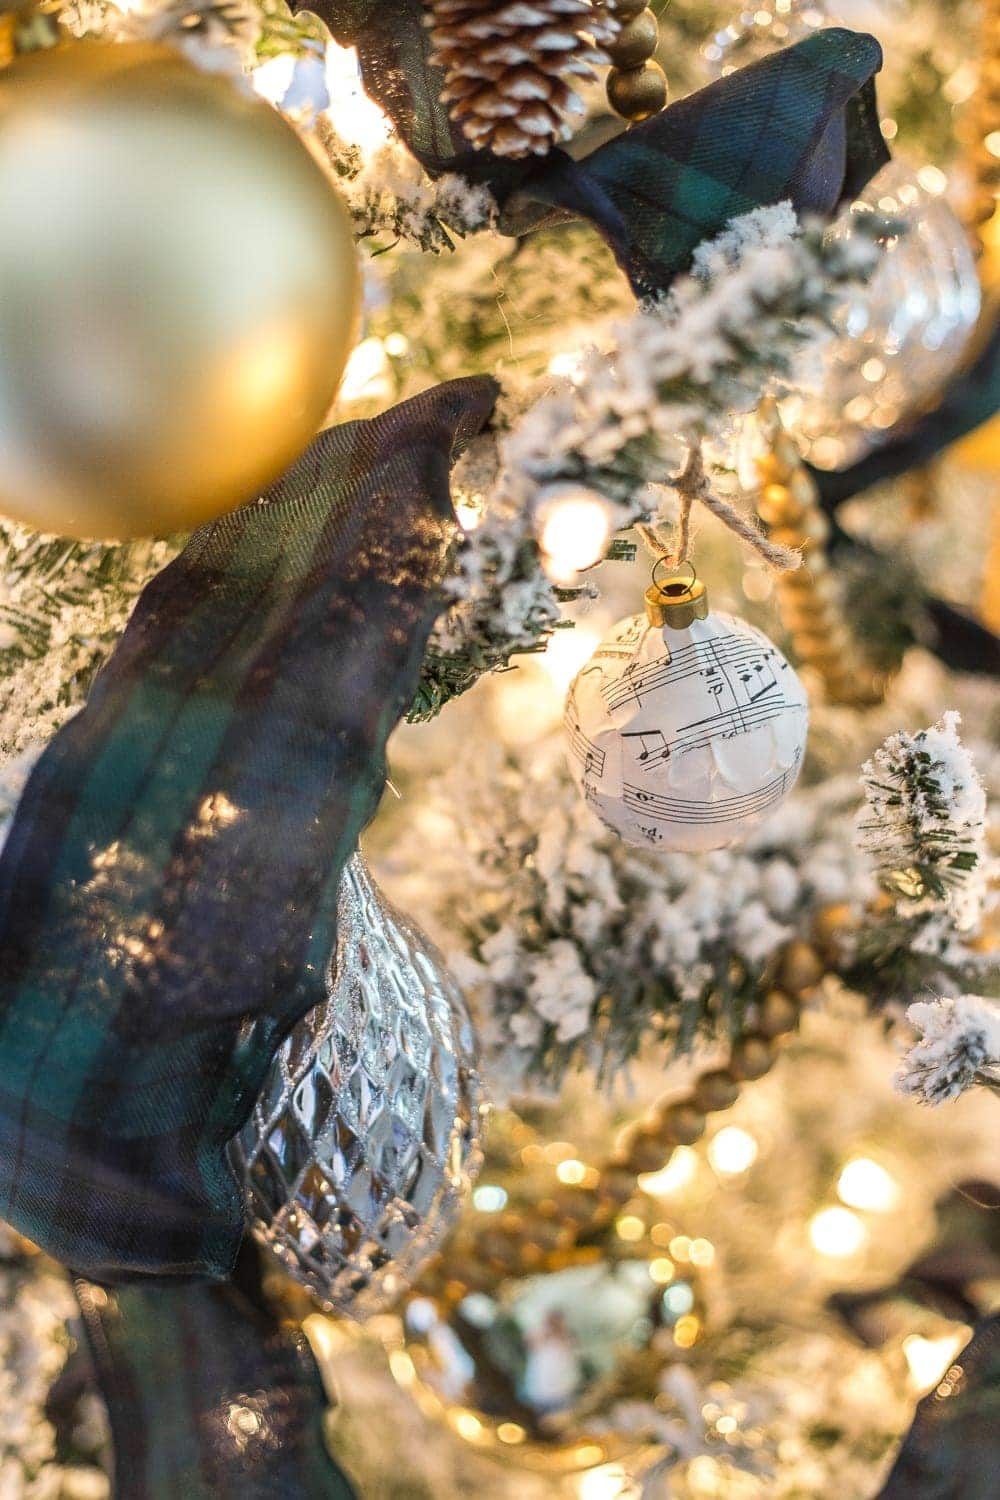 Thrifty Christmas decorating idea: Mod Podge old sheet music on cheap ball ornaments to make